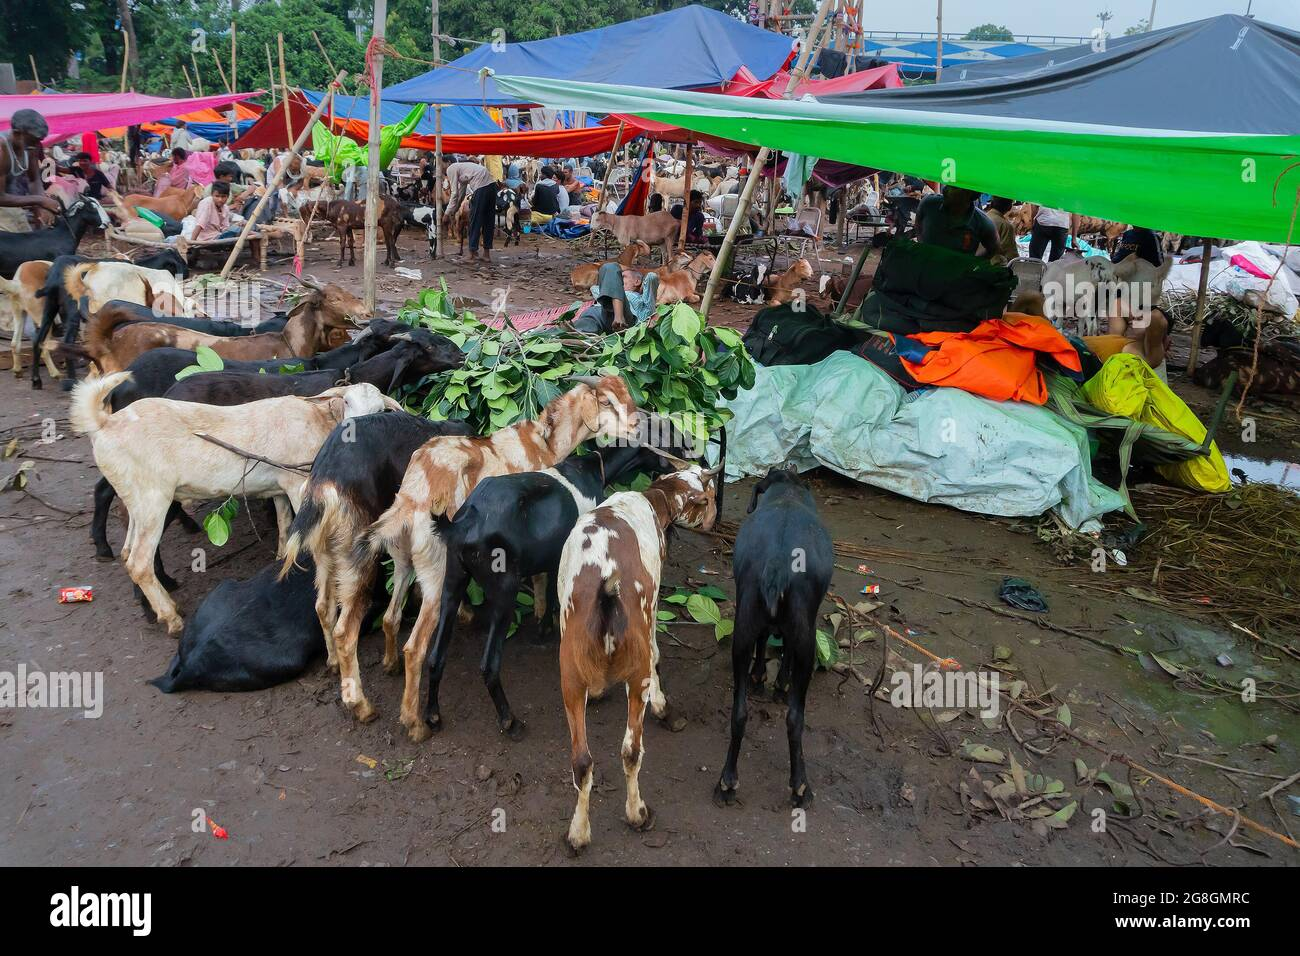 """Kolkata, West Bengal, India - 11th August 2019 : Goats for sale in open market during """"Eid al-Adha"""" or 'Feast of the Sacrifice' or Eid Qurban or """"Fest Stock Photo"""